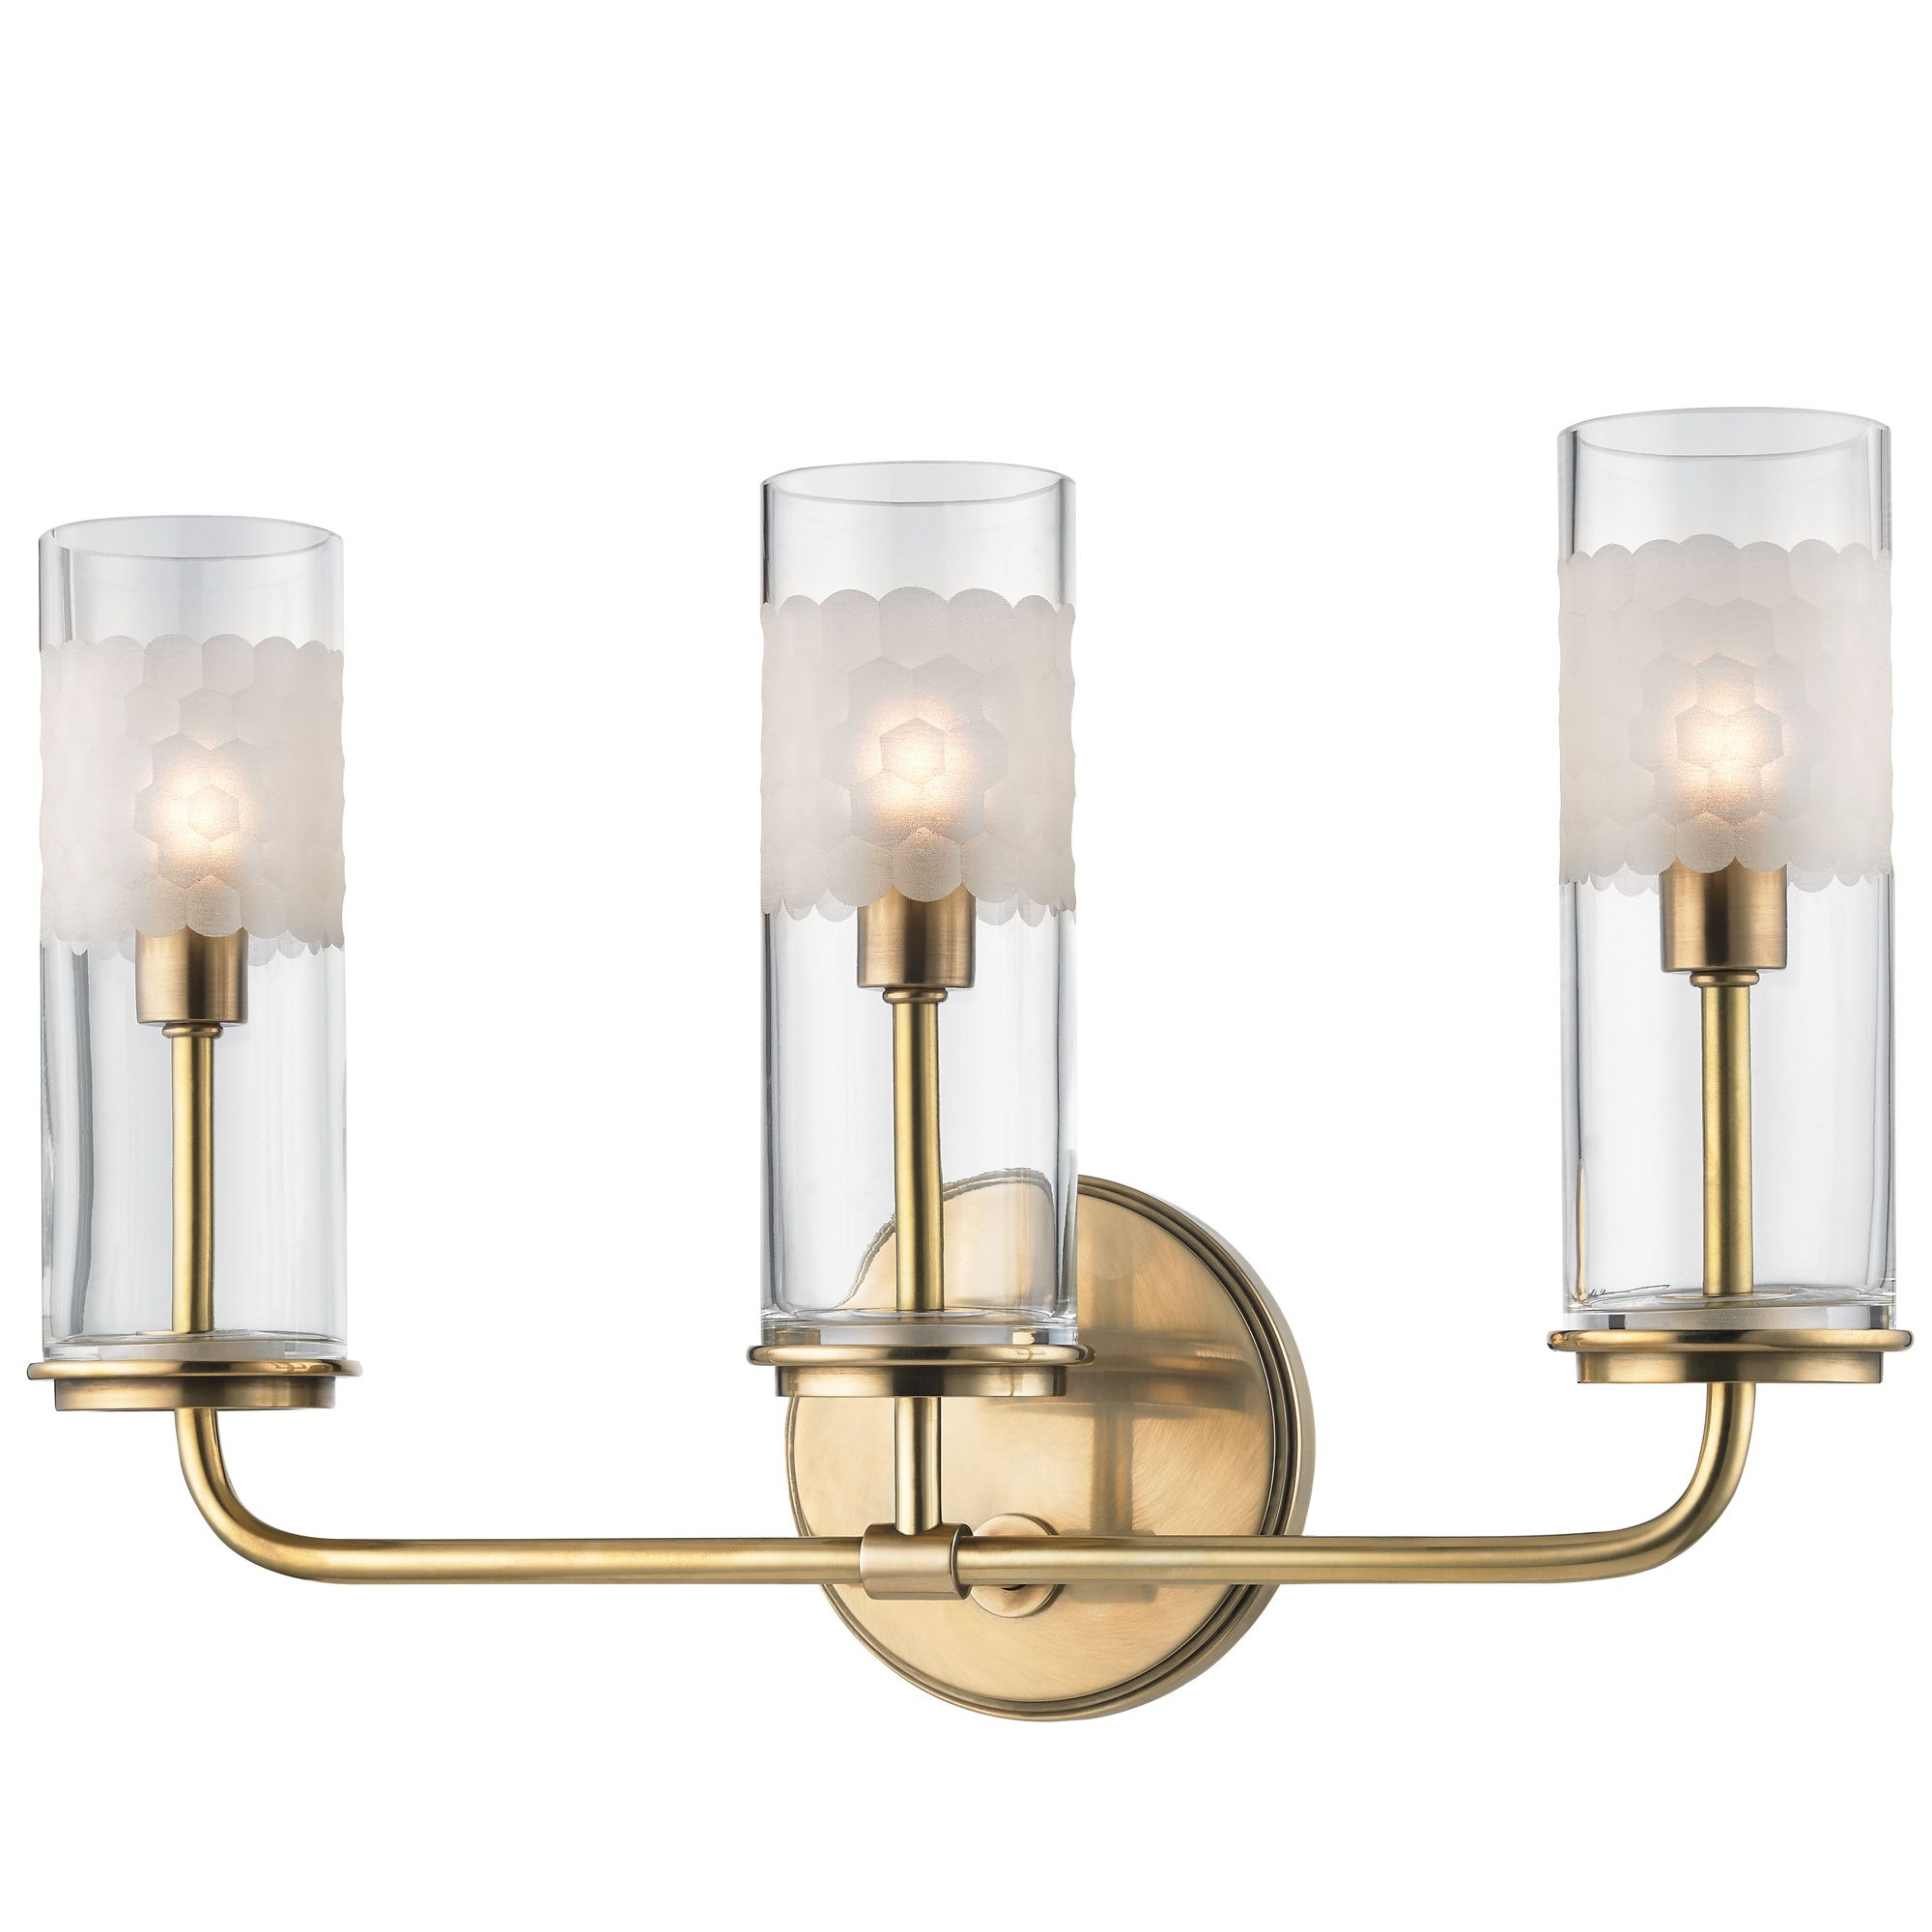 Photo of Wentworth Wall Light by Hudson Valley Lighting | 3903-AGB